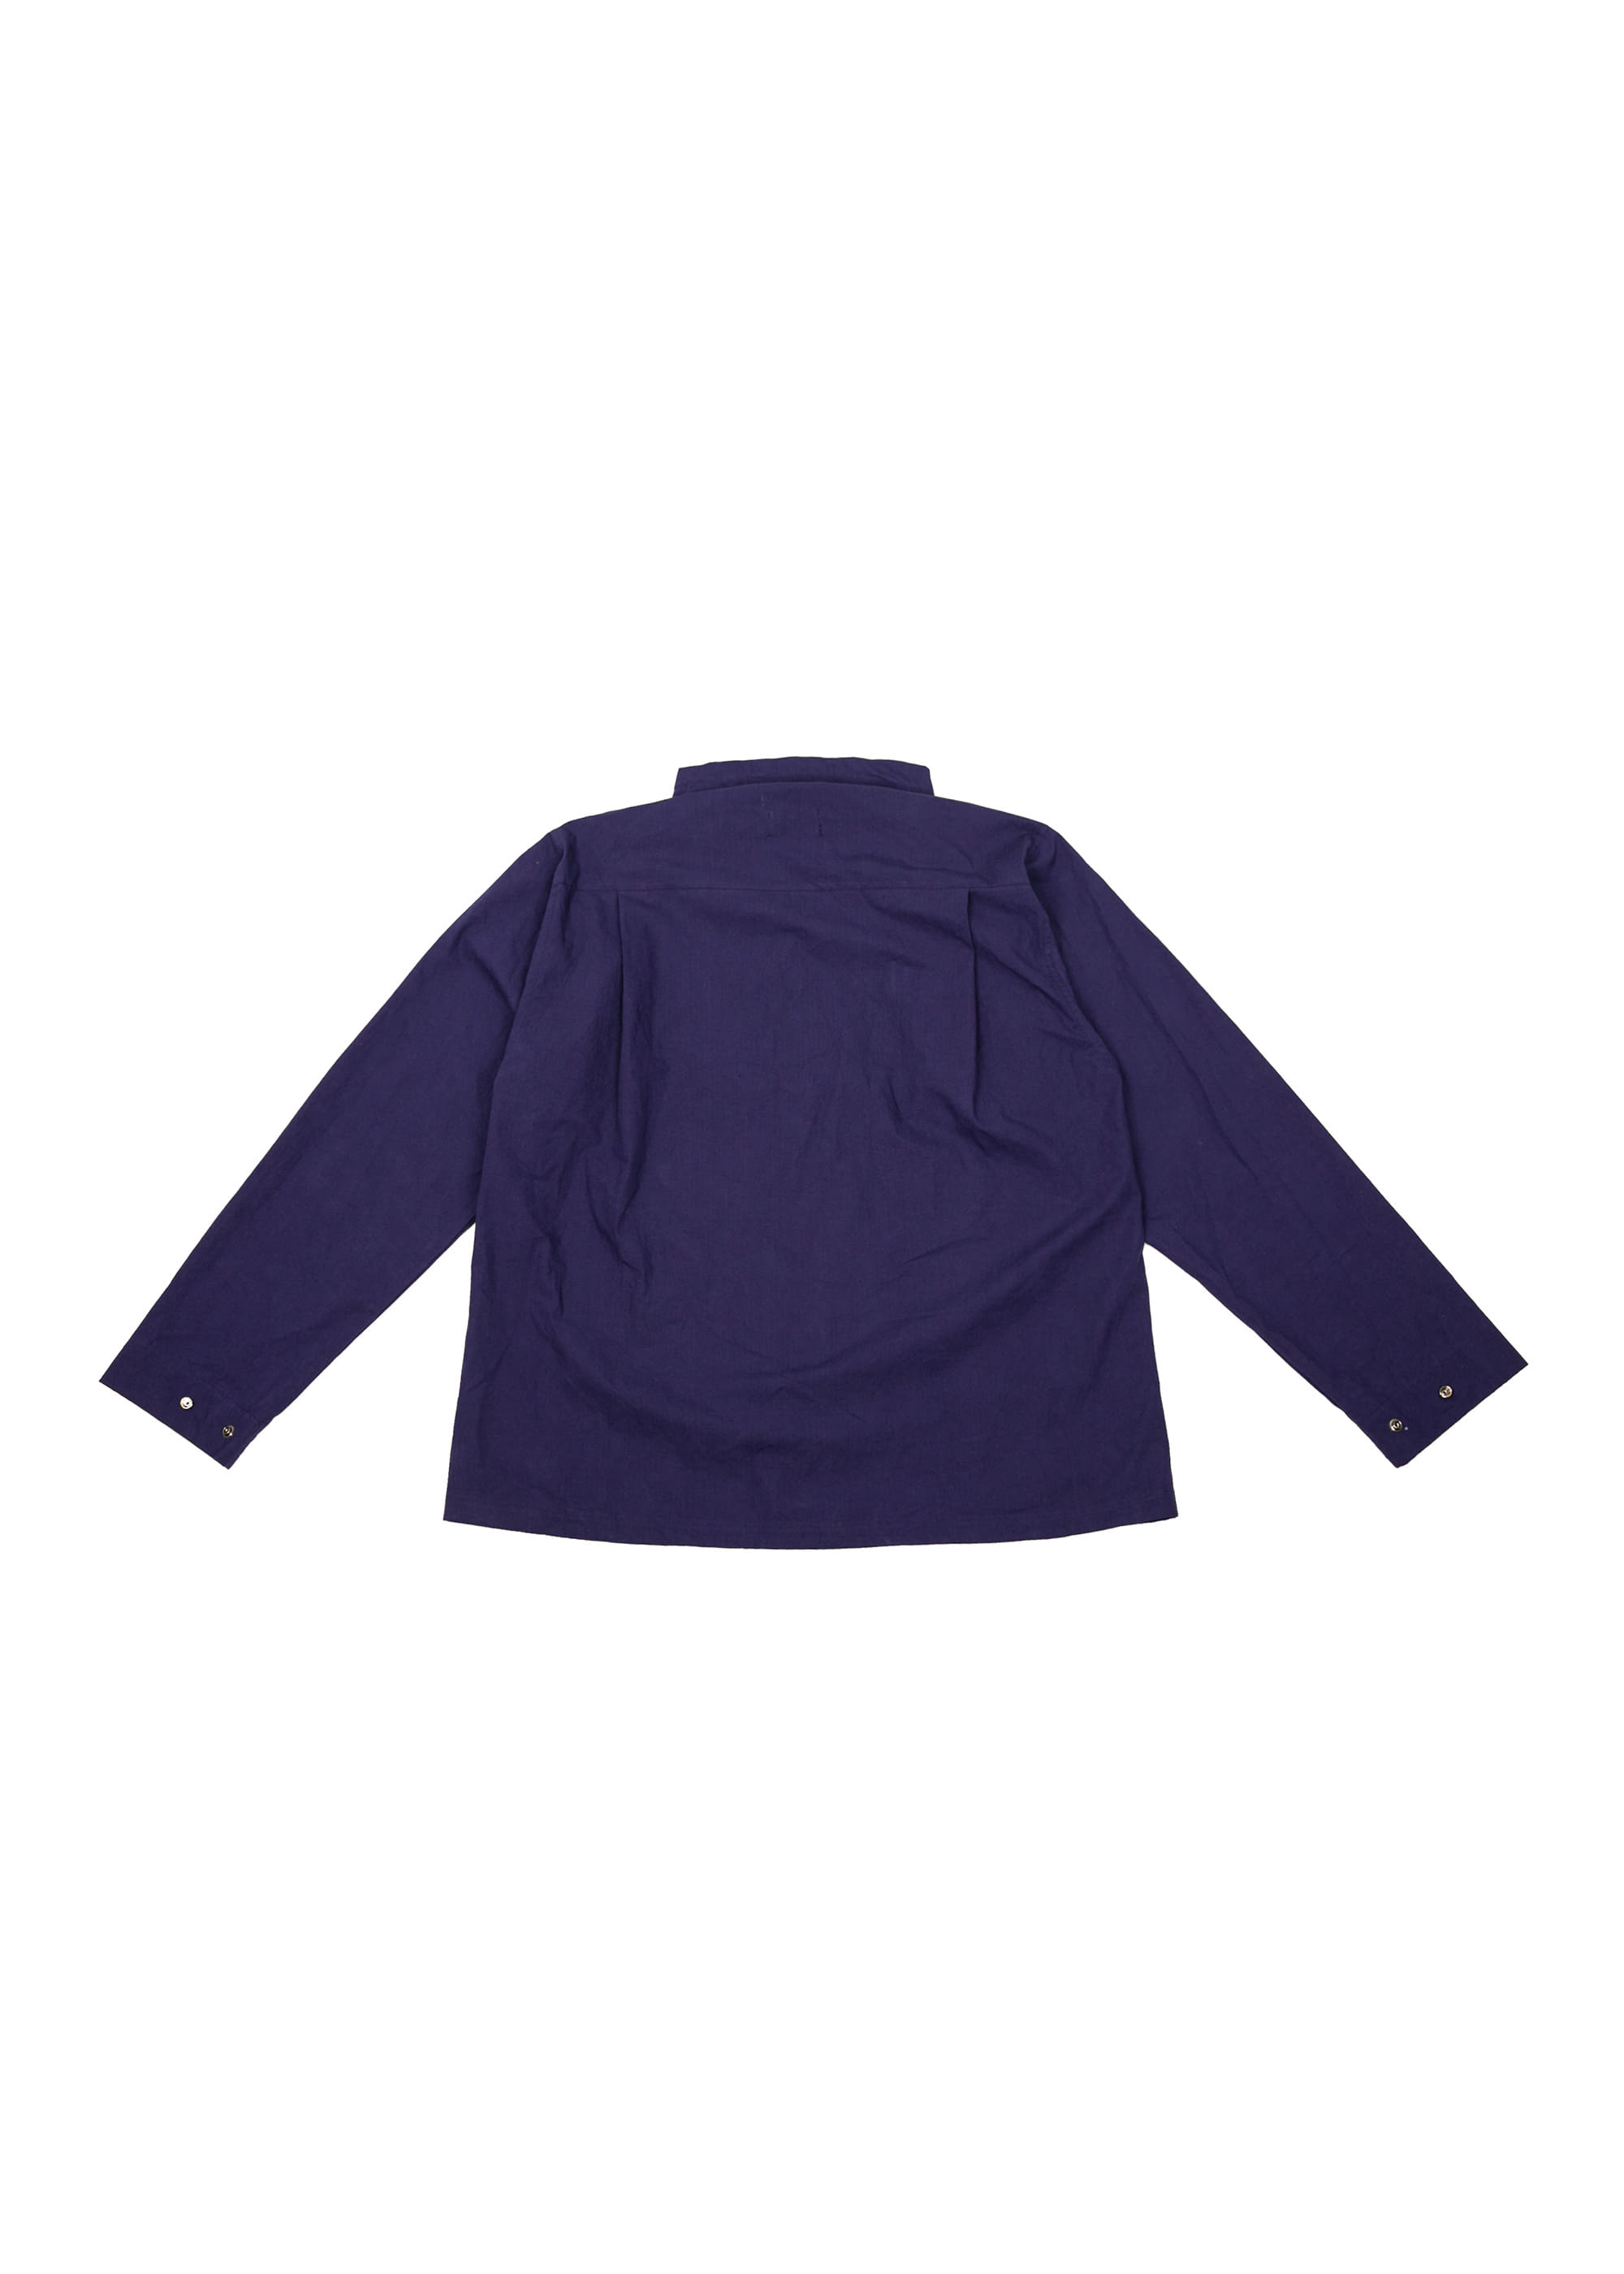 Neck String Shirts Jacket - Purple